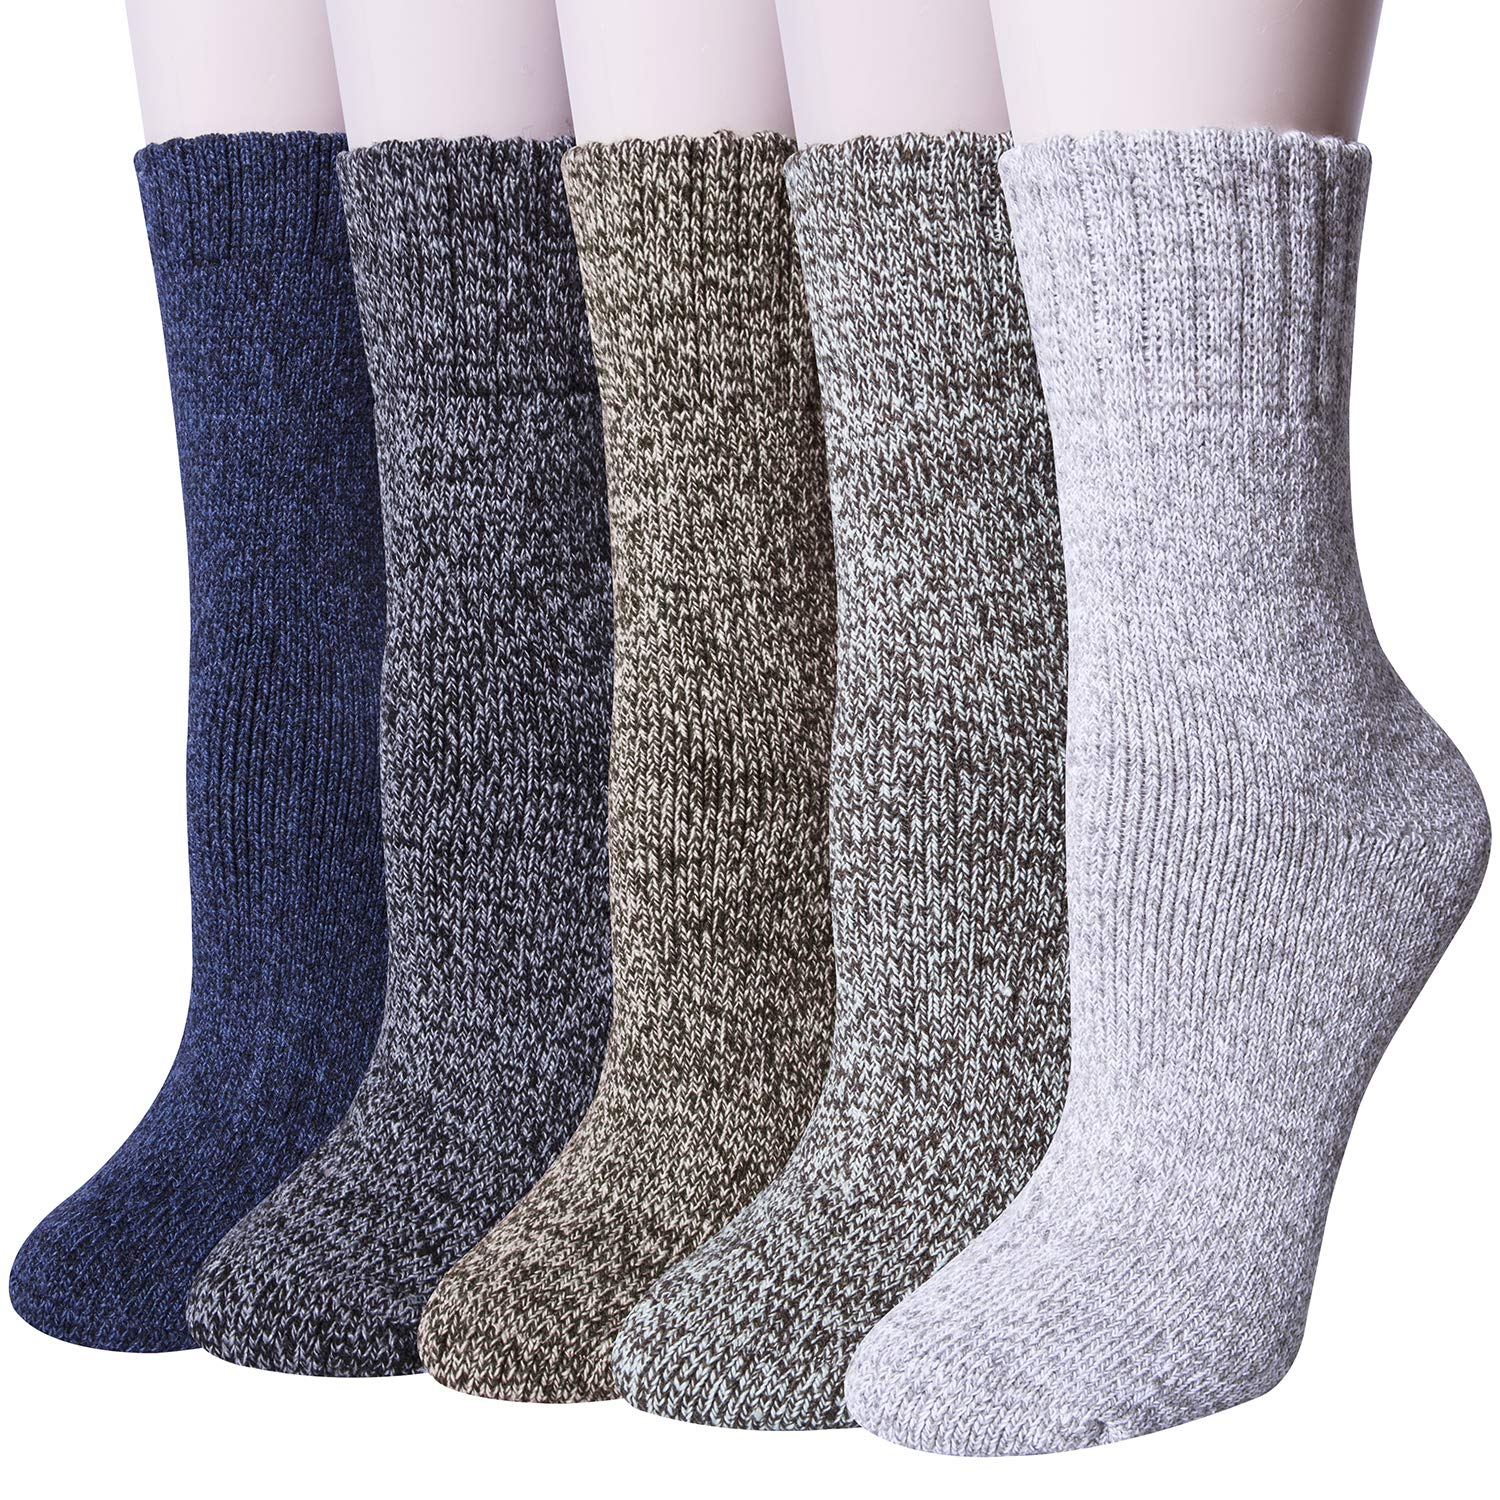 b76720413f048 Loritta 5 Pairs Womens Wool Socks Winter Warm Soft Knit Vintage Casual Crew  Socks at Amazon Women's Clothing store